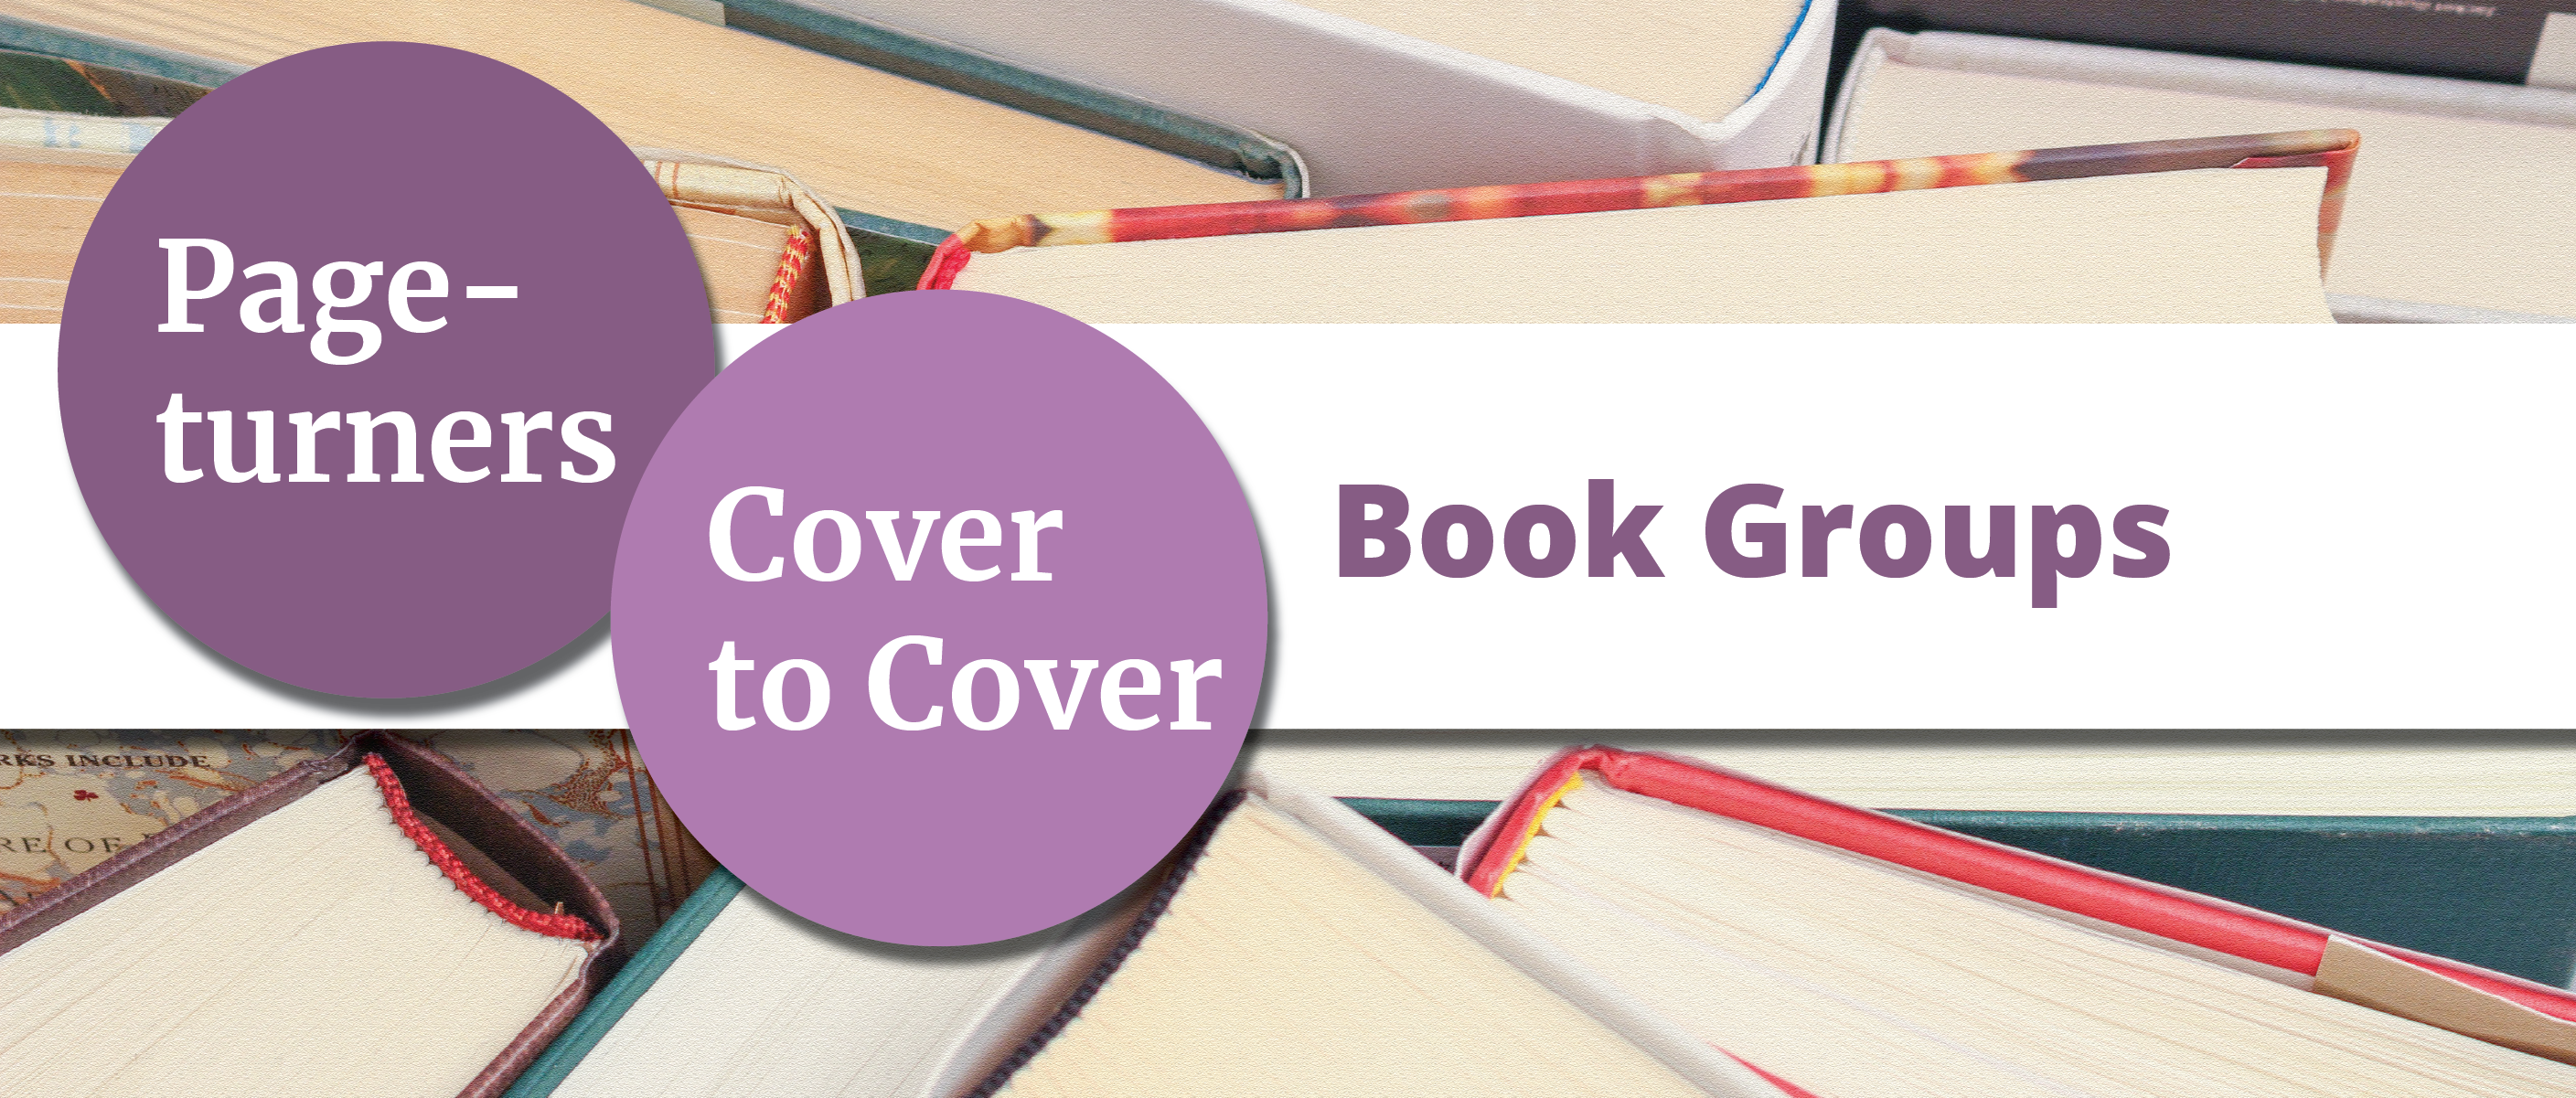 Pageturners and Cover to Cover